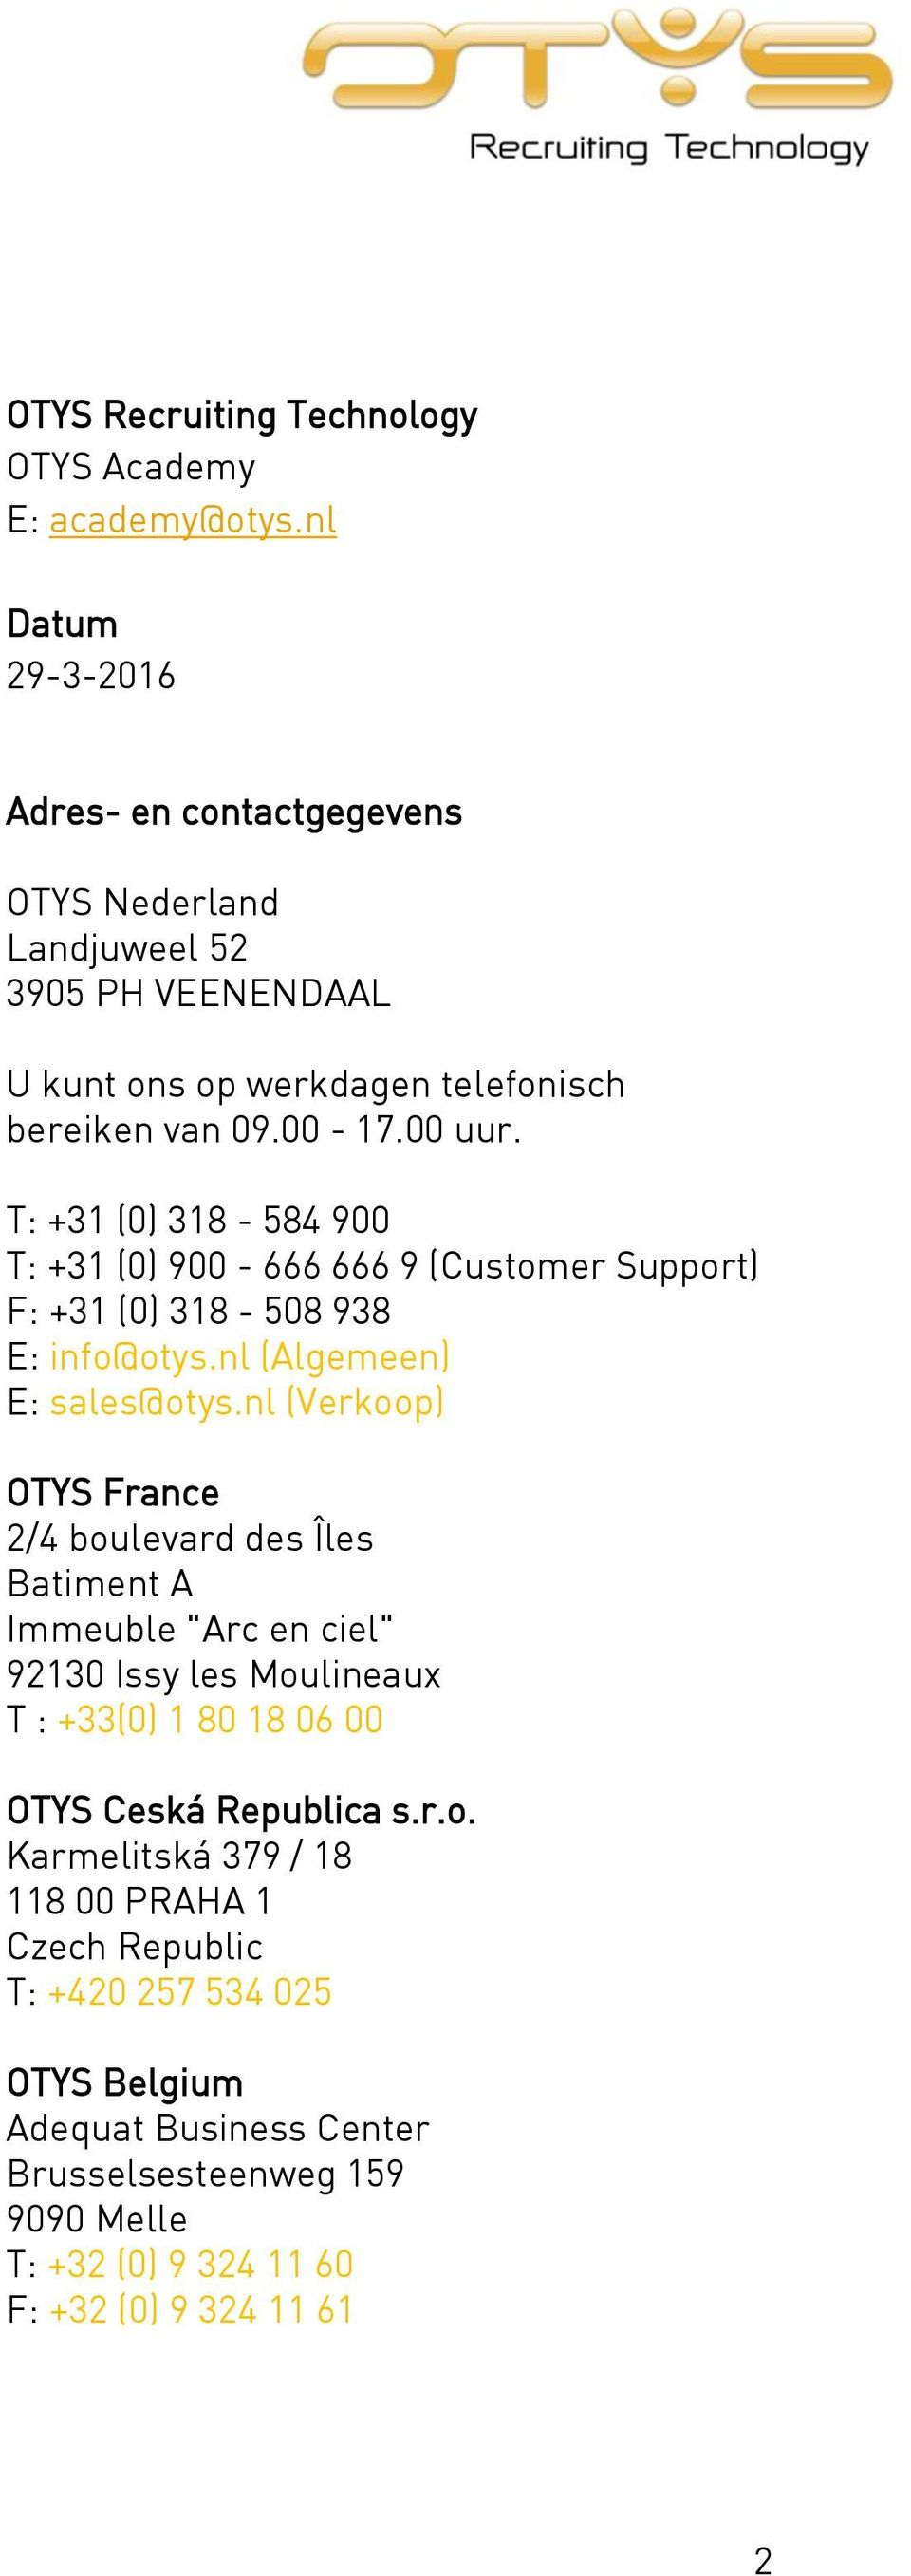 T: +31 (0) 318-584 900 T: +31 (0) 900-666 666 9 (Customer Support) F: +31 (0) 318-508 938 E: info@otys.nl (Algemeen) E: sales@otys.